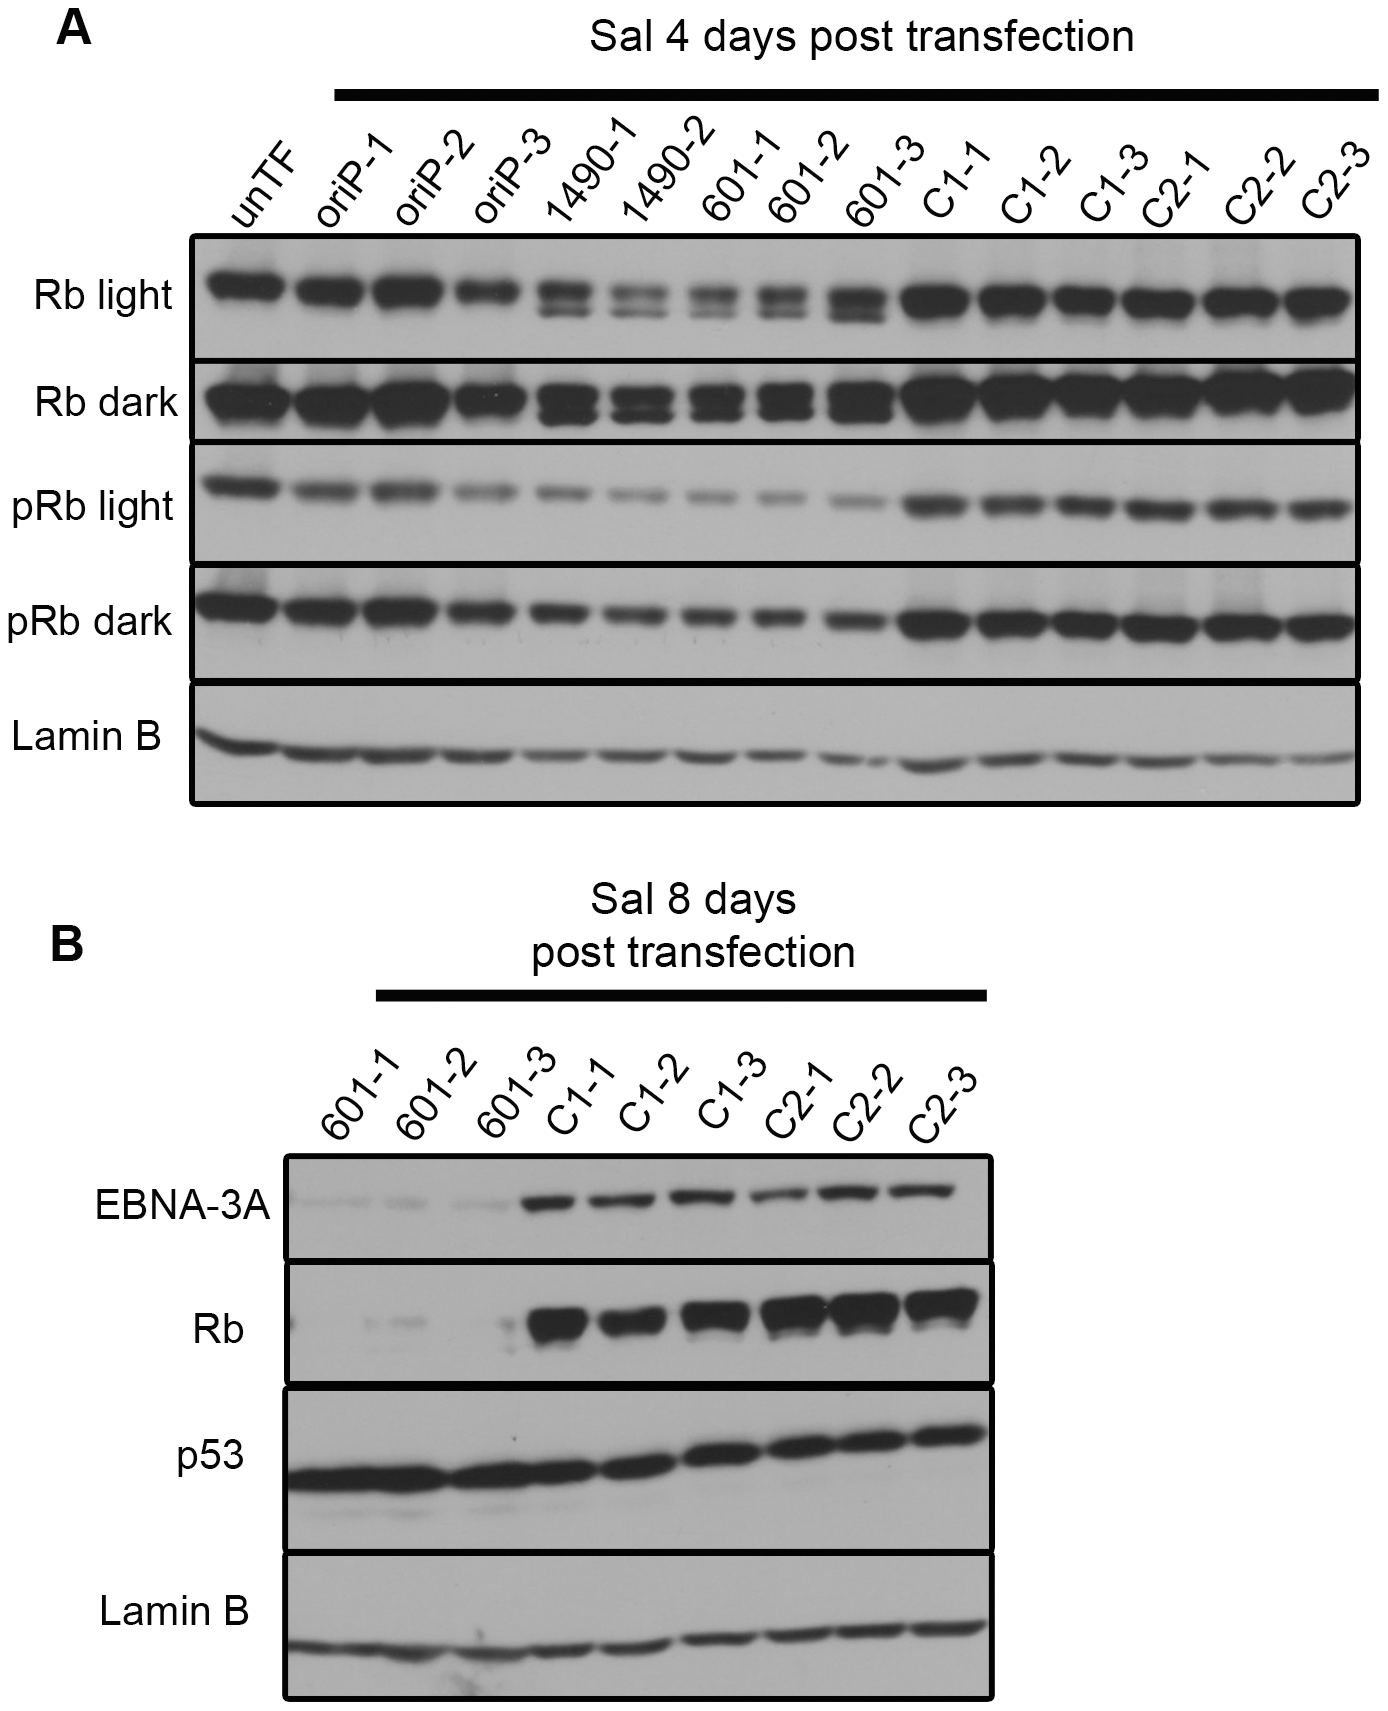 EBNA-3A supports maintenance of Rb hyperphosphorylation and stabilization in Wp-R latency.